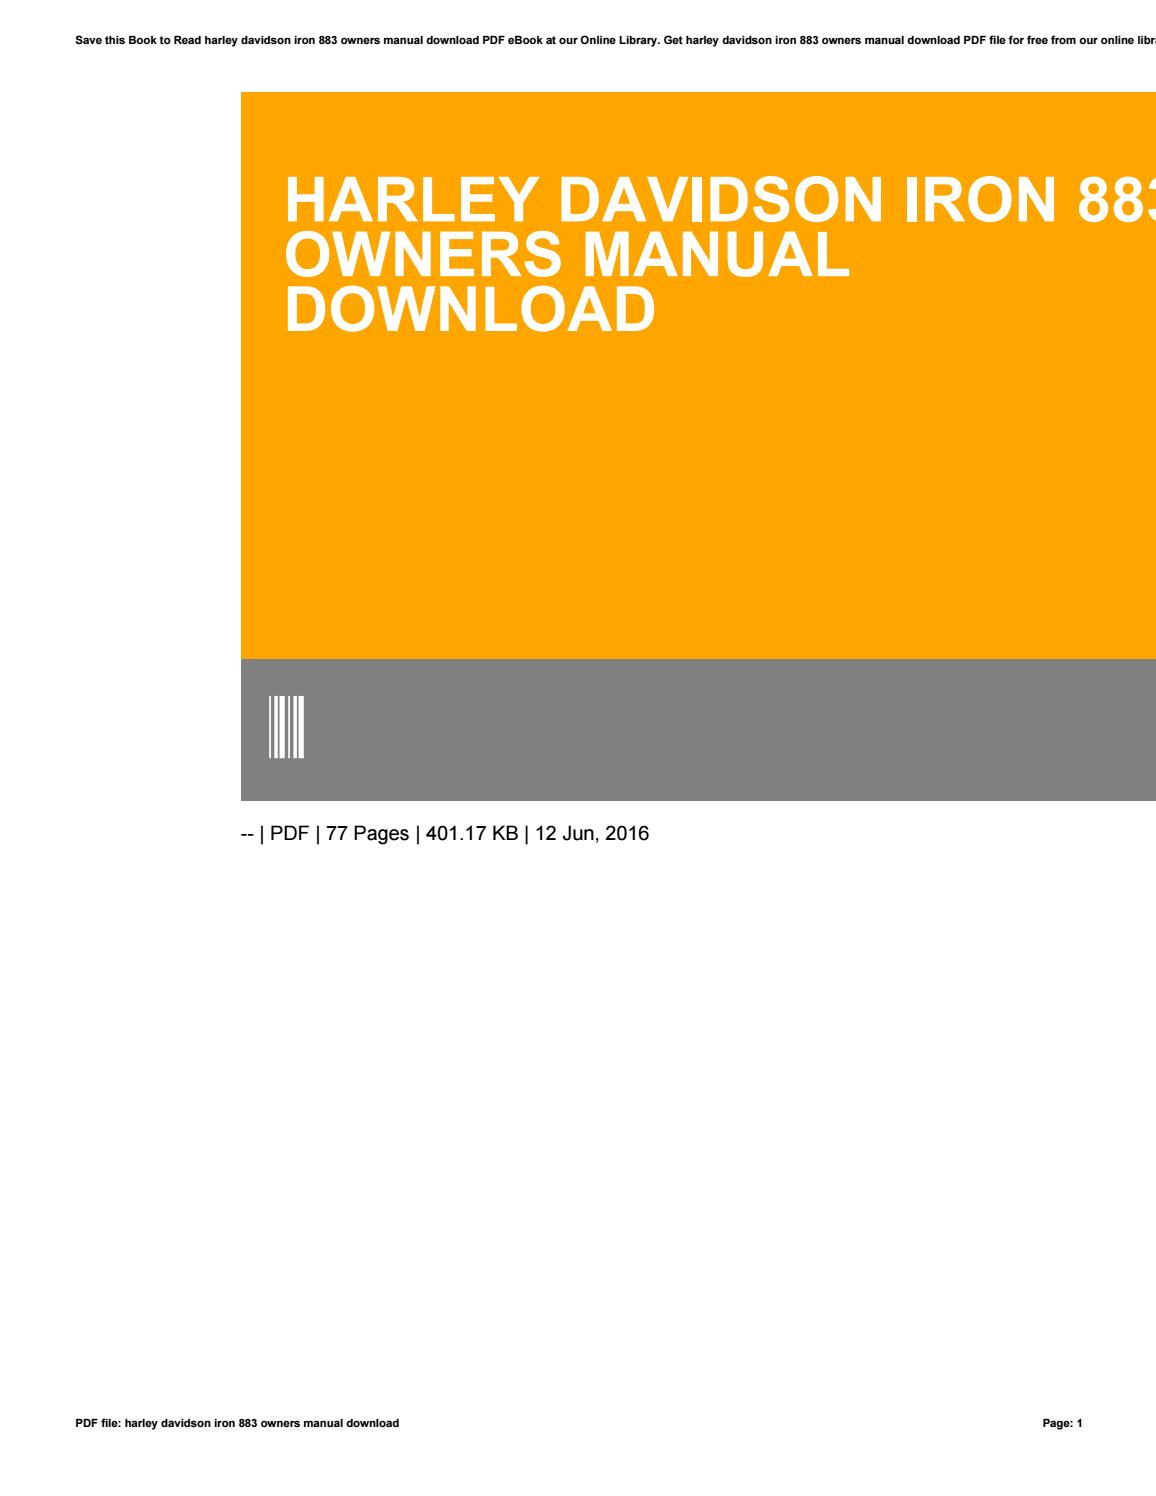 Harley Davidson Owners Manual Pdf Free Download